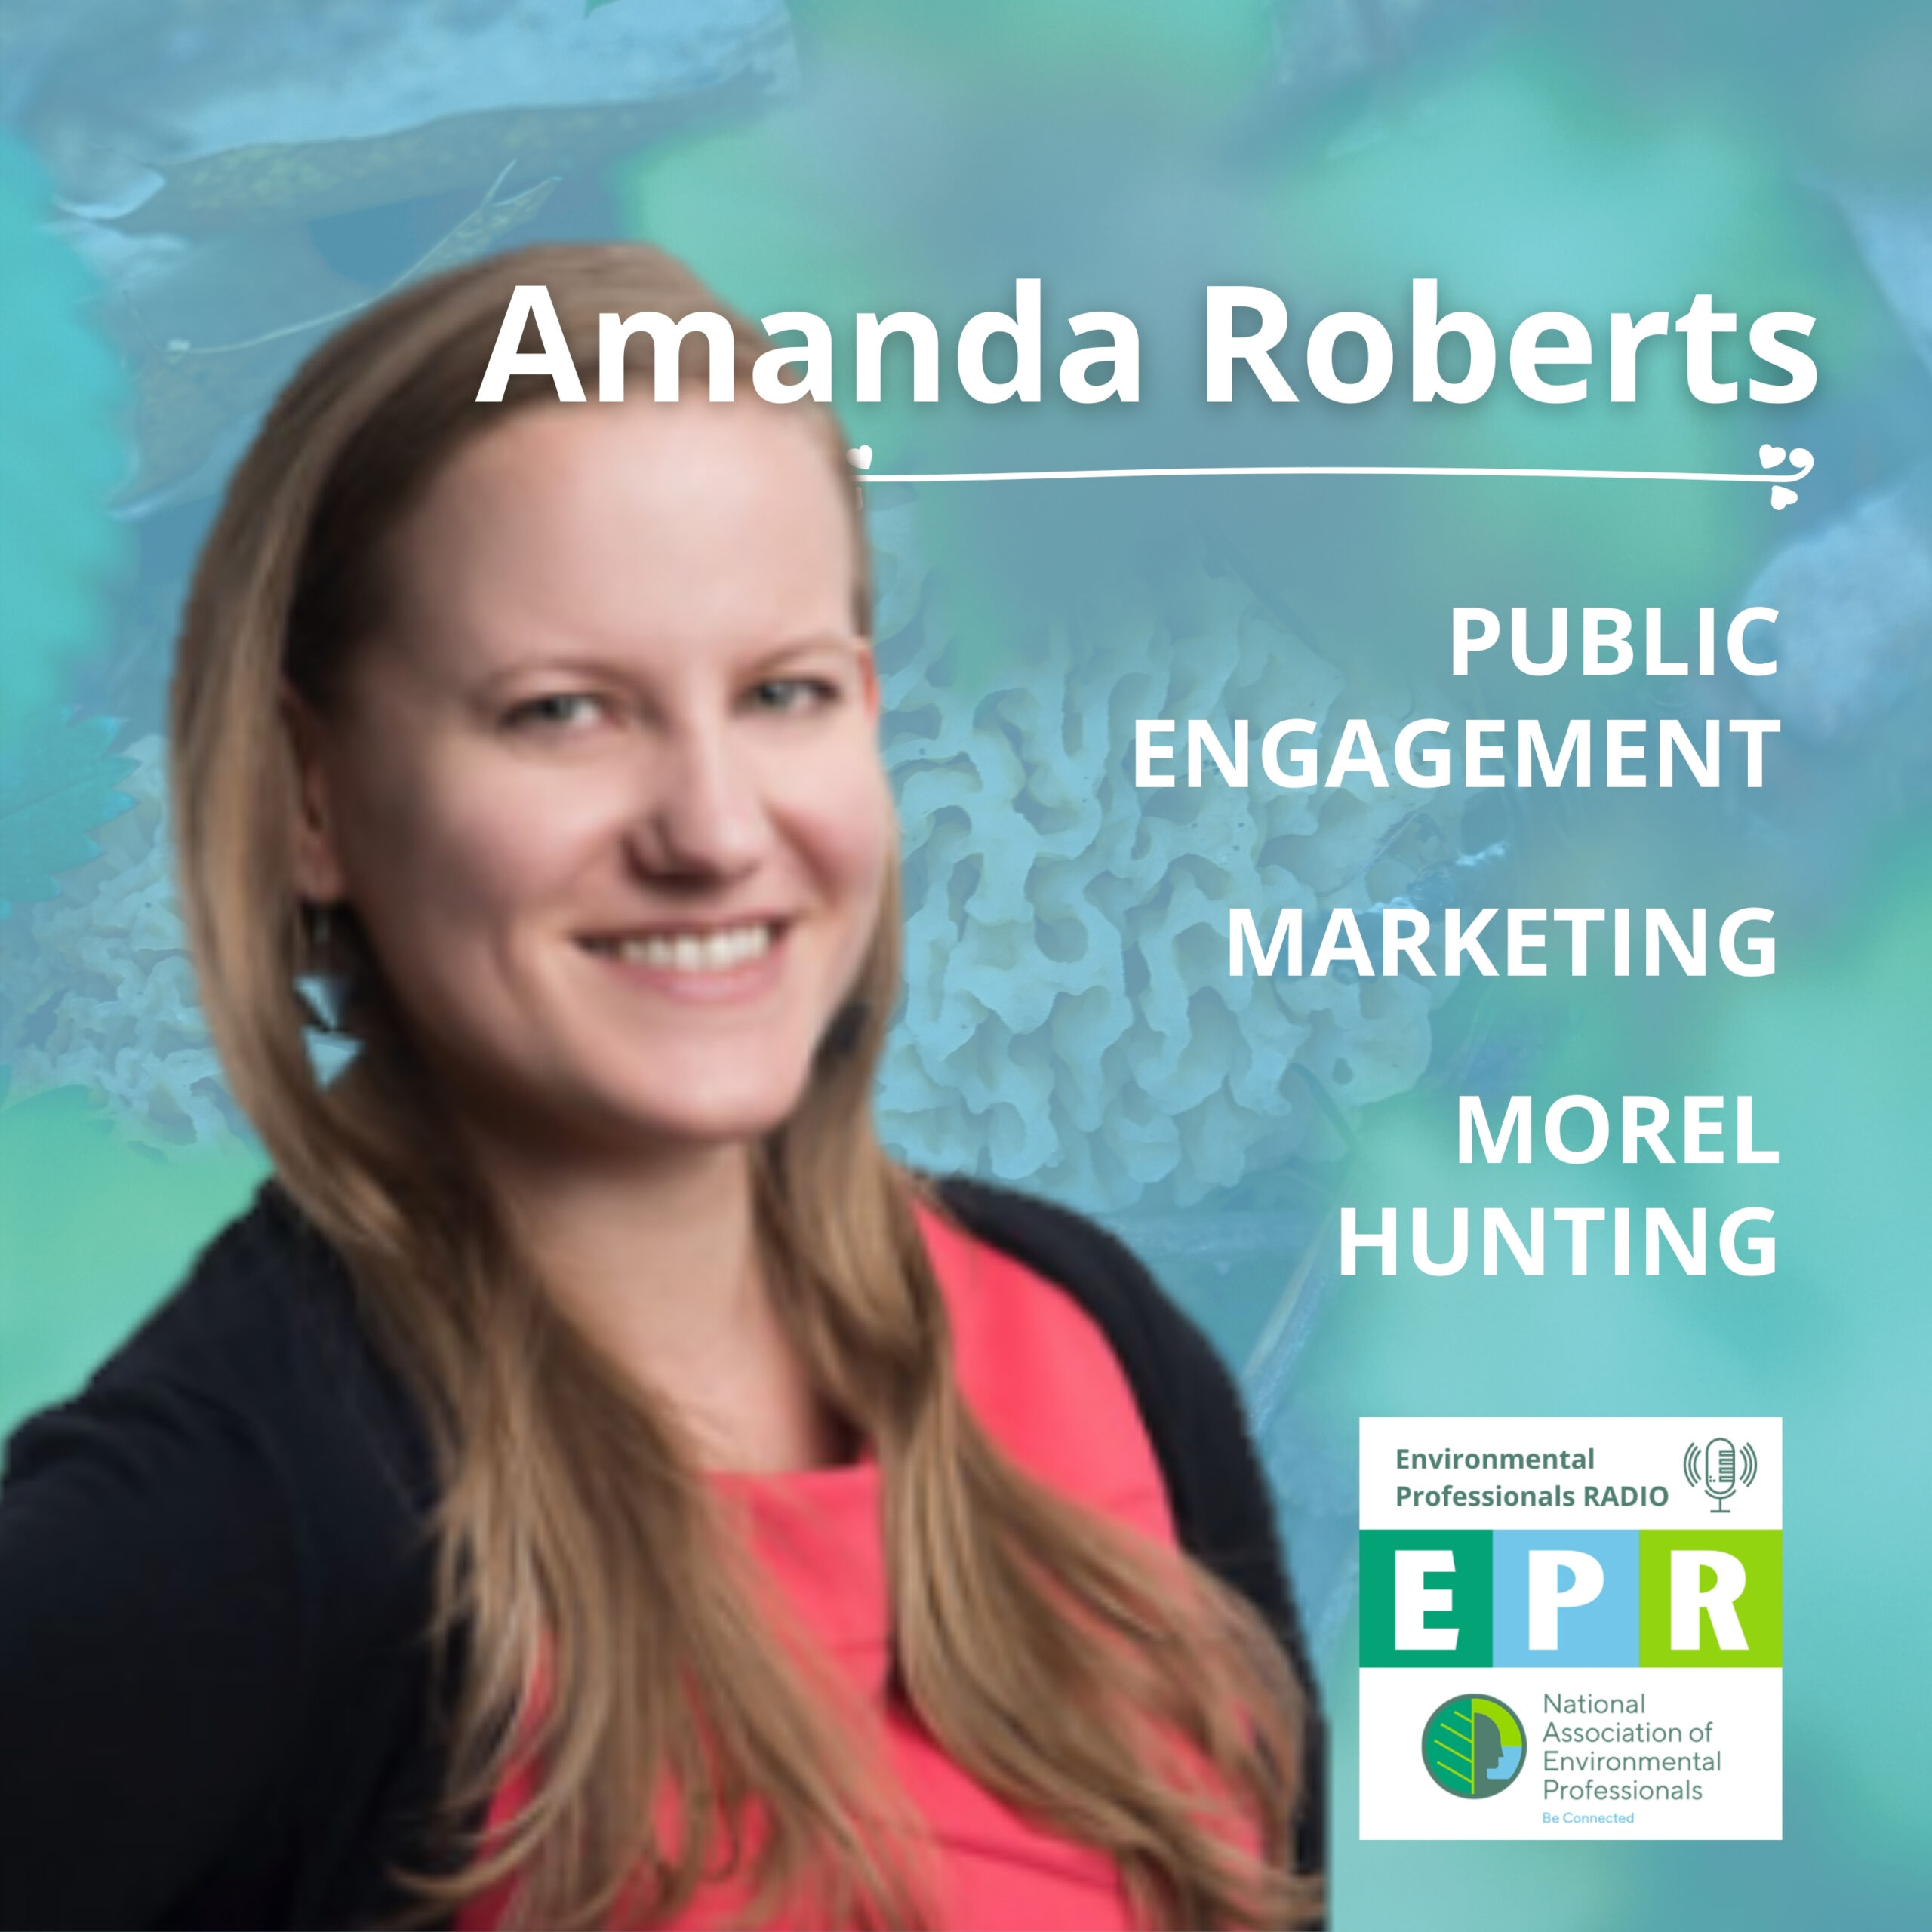 Promotional image for the NAEP podcast featuring the headshot of Amanda Roberts